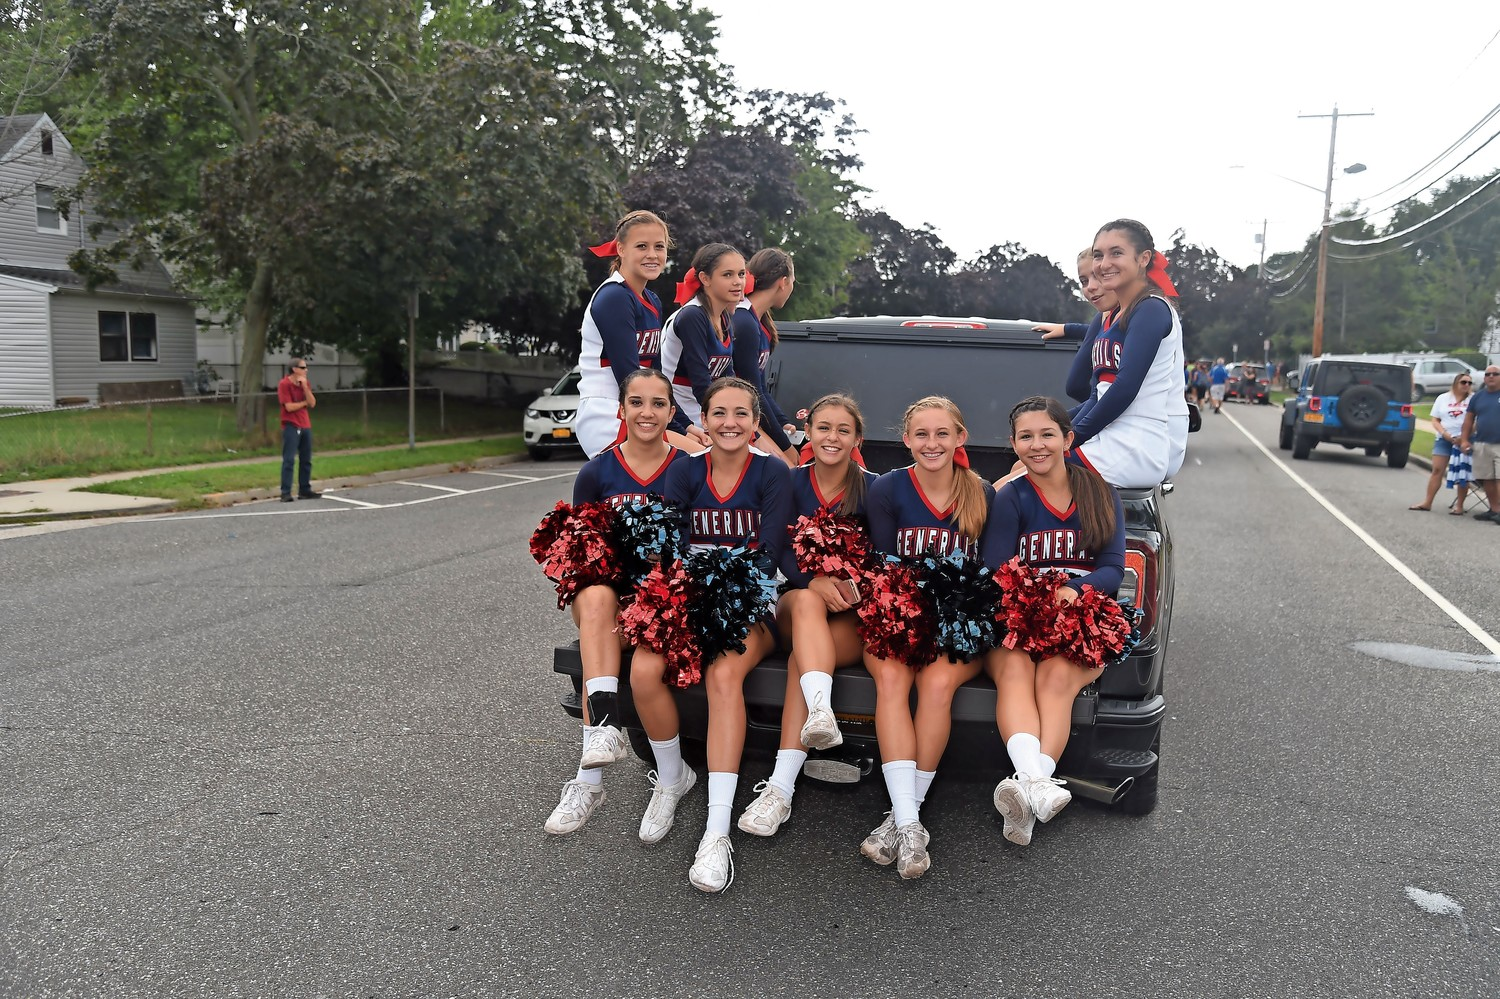 The varsity cheerleaders chanted along the parade route.